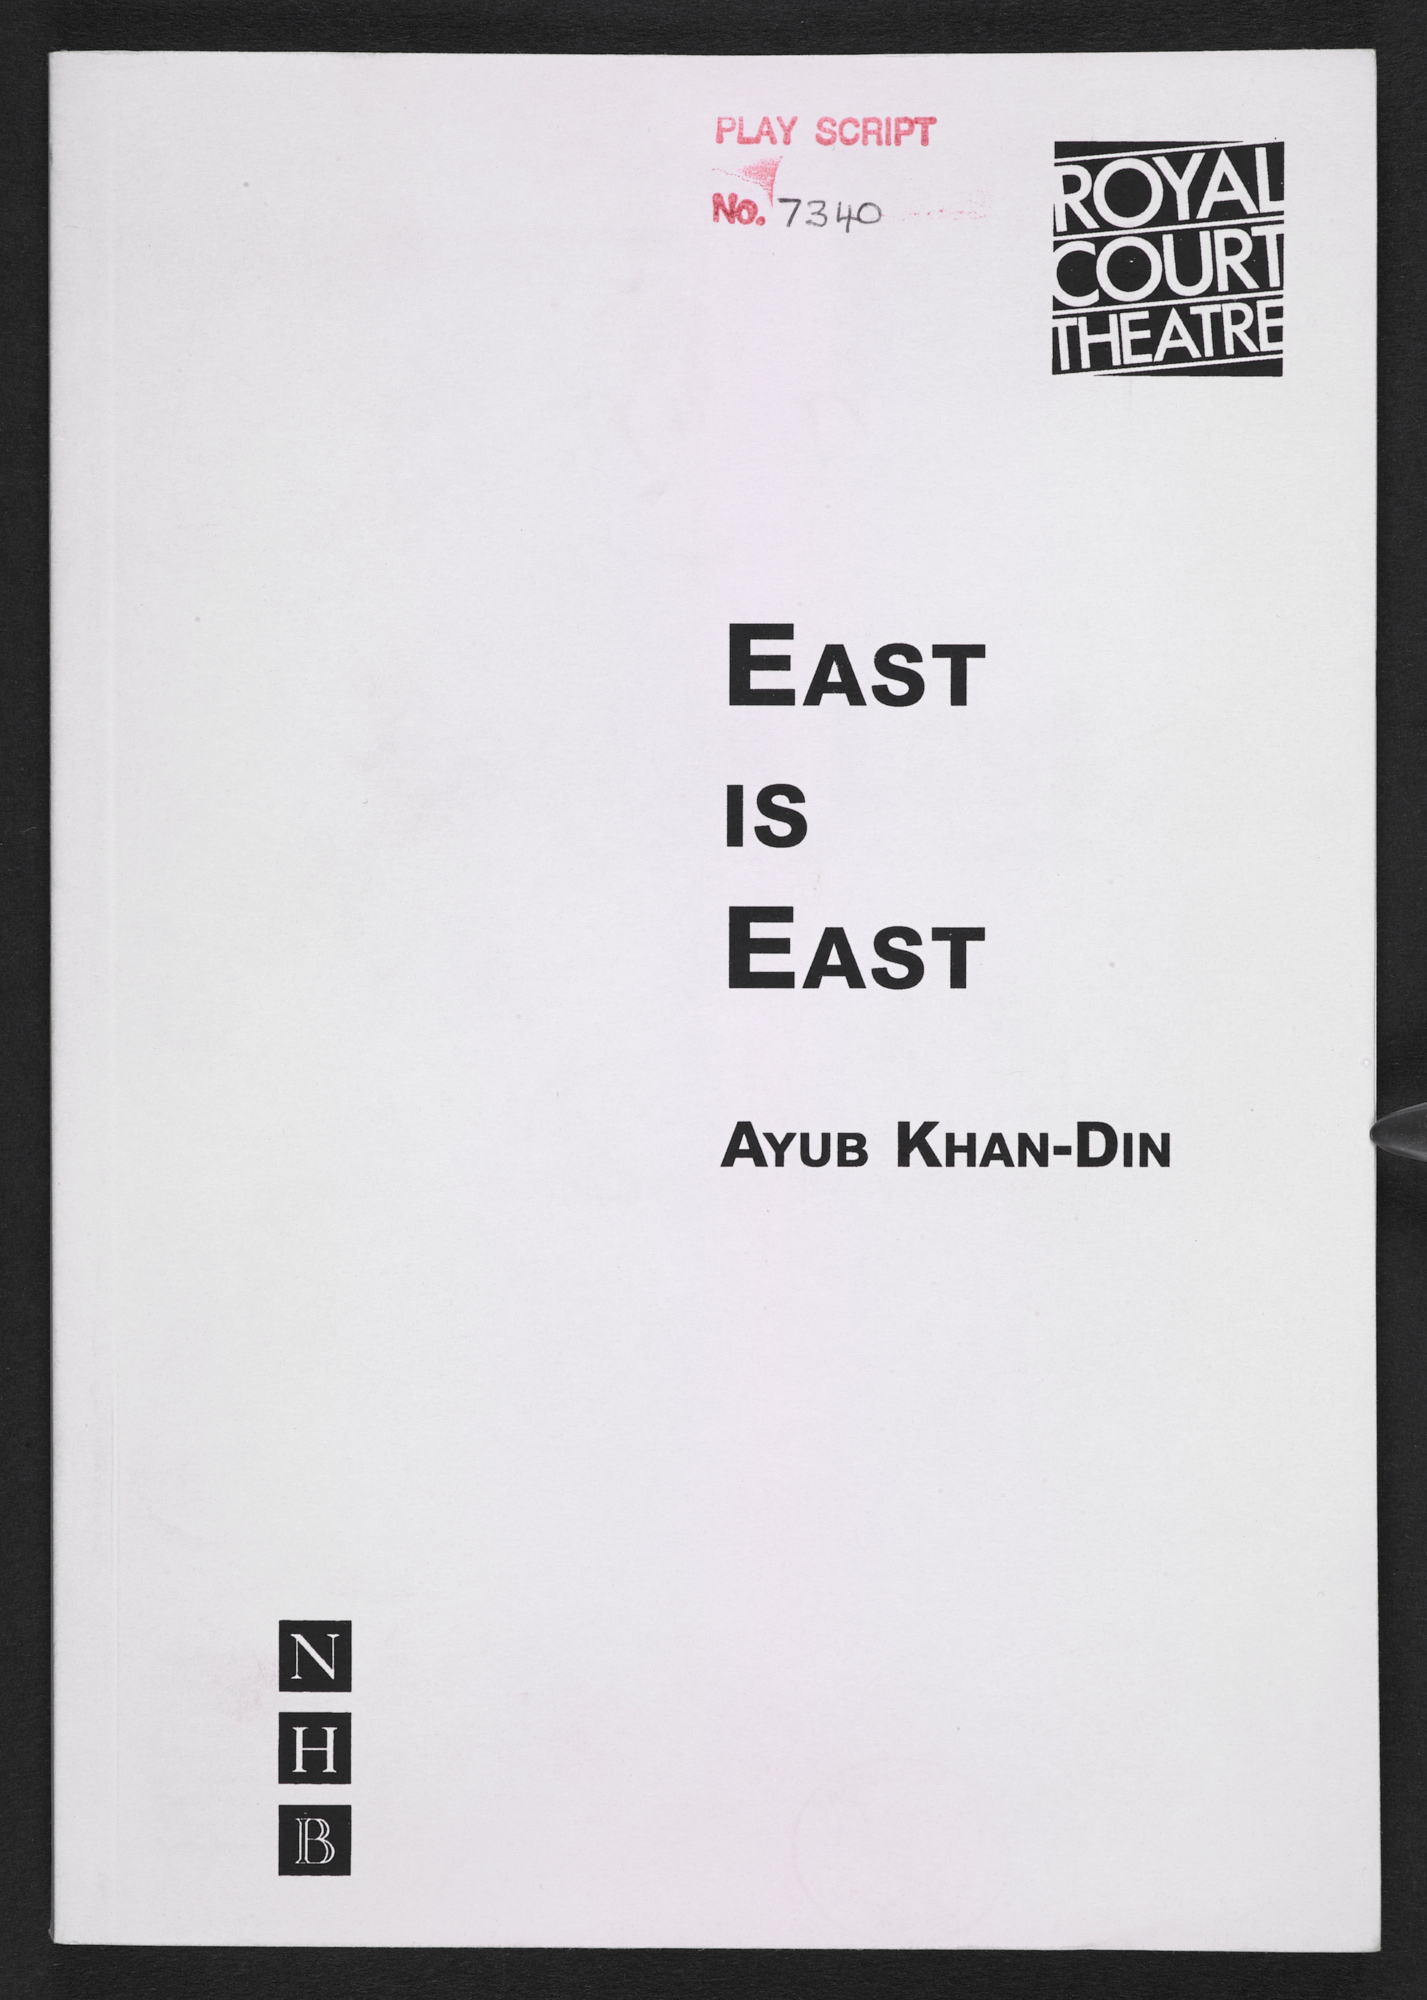 Playscript of East is East by Ayub Khan Din, 1996